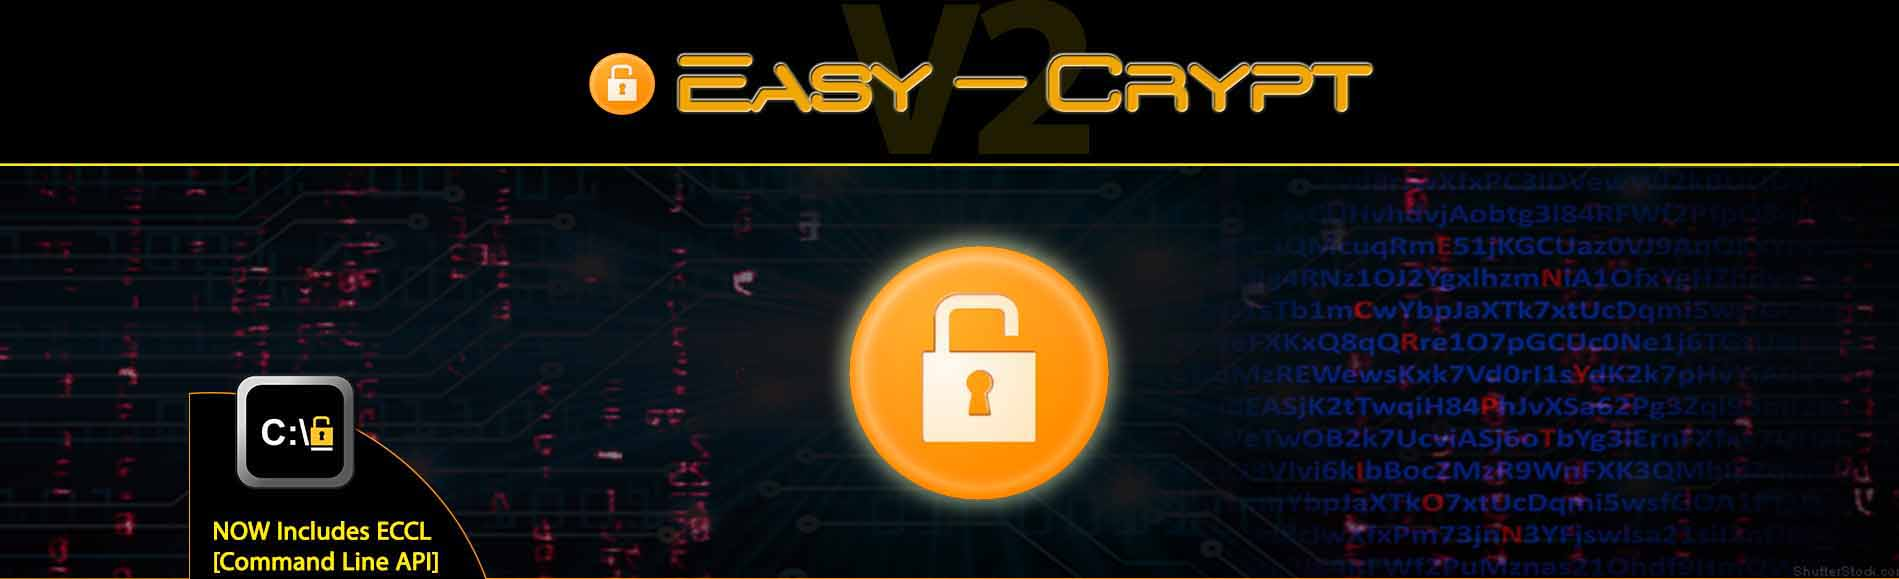 Easy-Crypt V2 - Includes ECCL [CMD API]